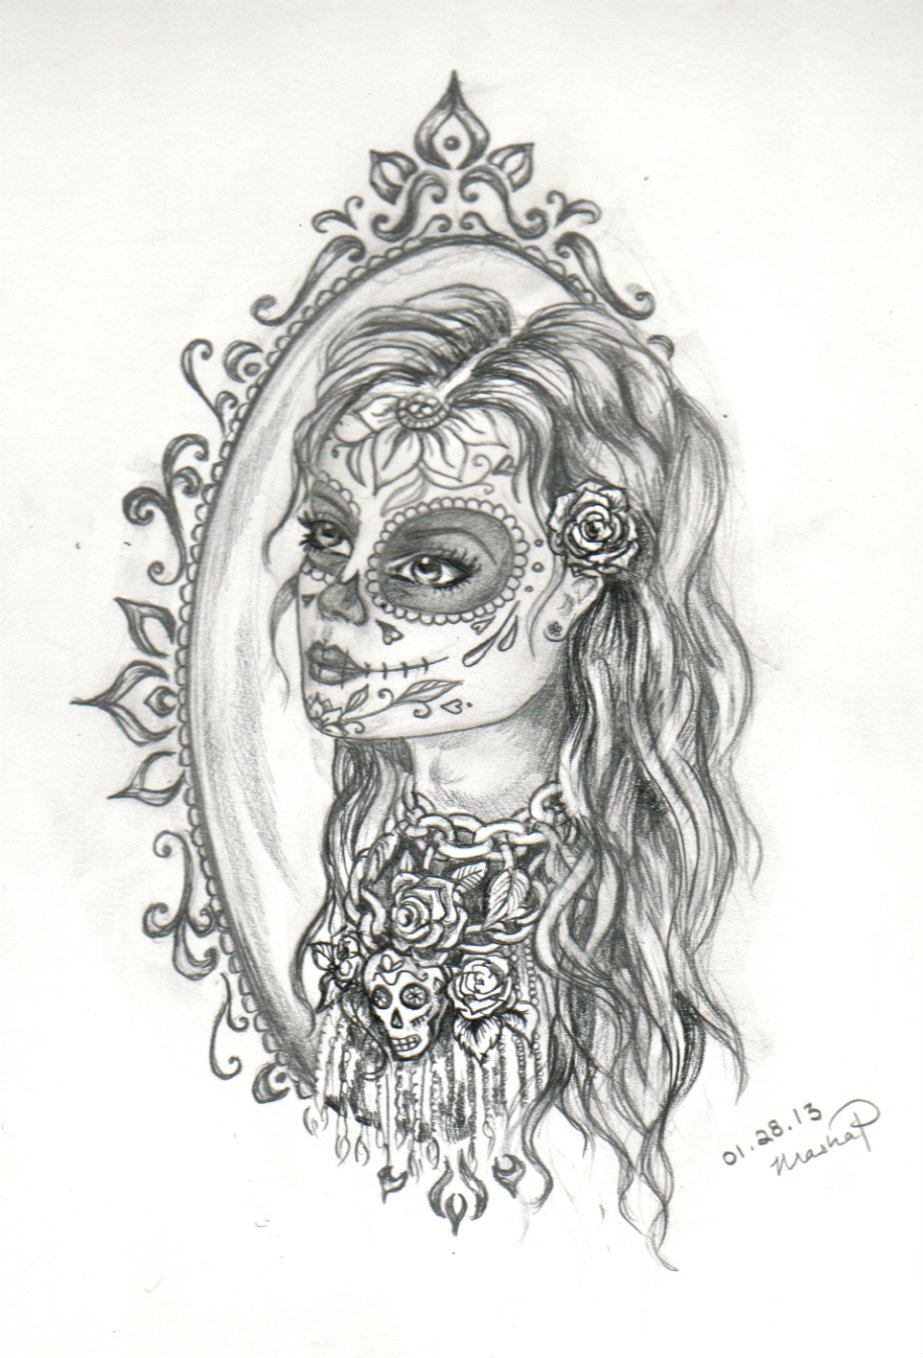 tattoo designidea by mashamanya tattoo designidea by mashamanya - Tattoo Idea Designs